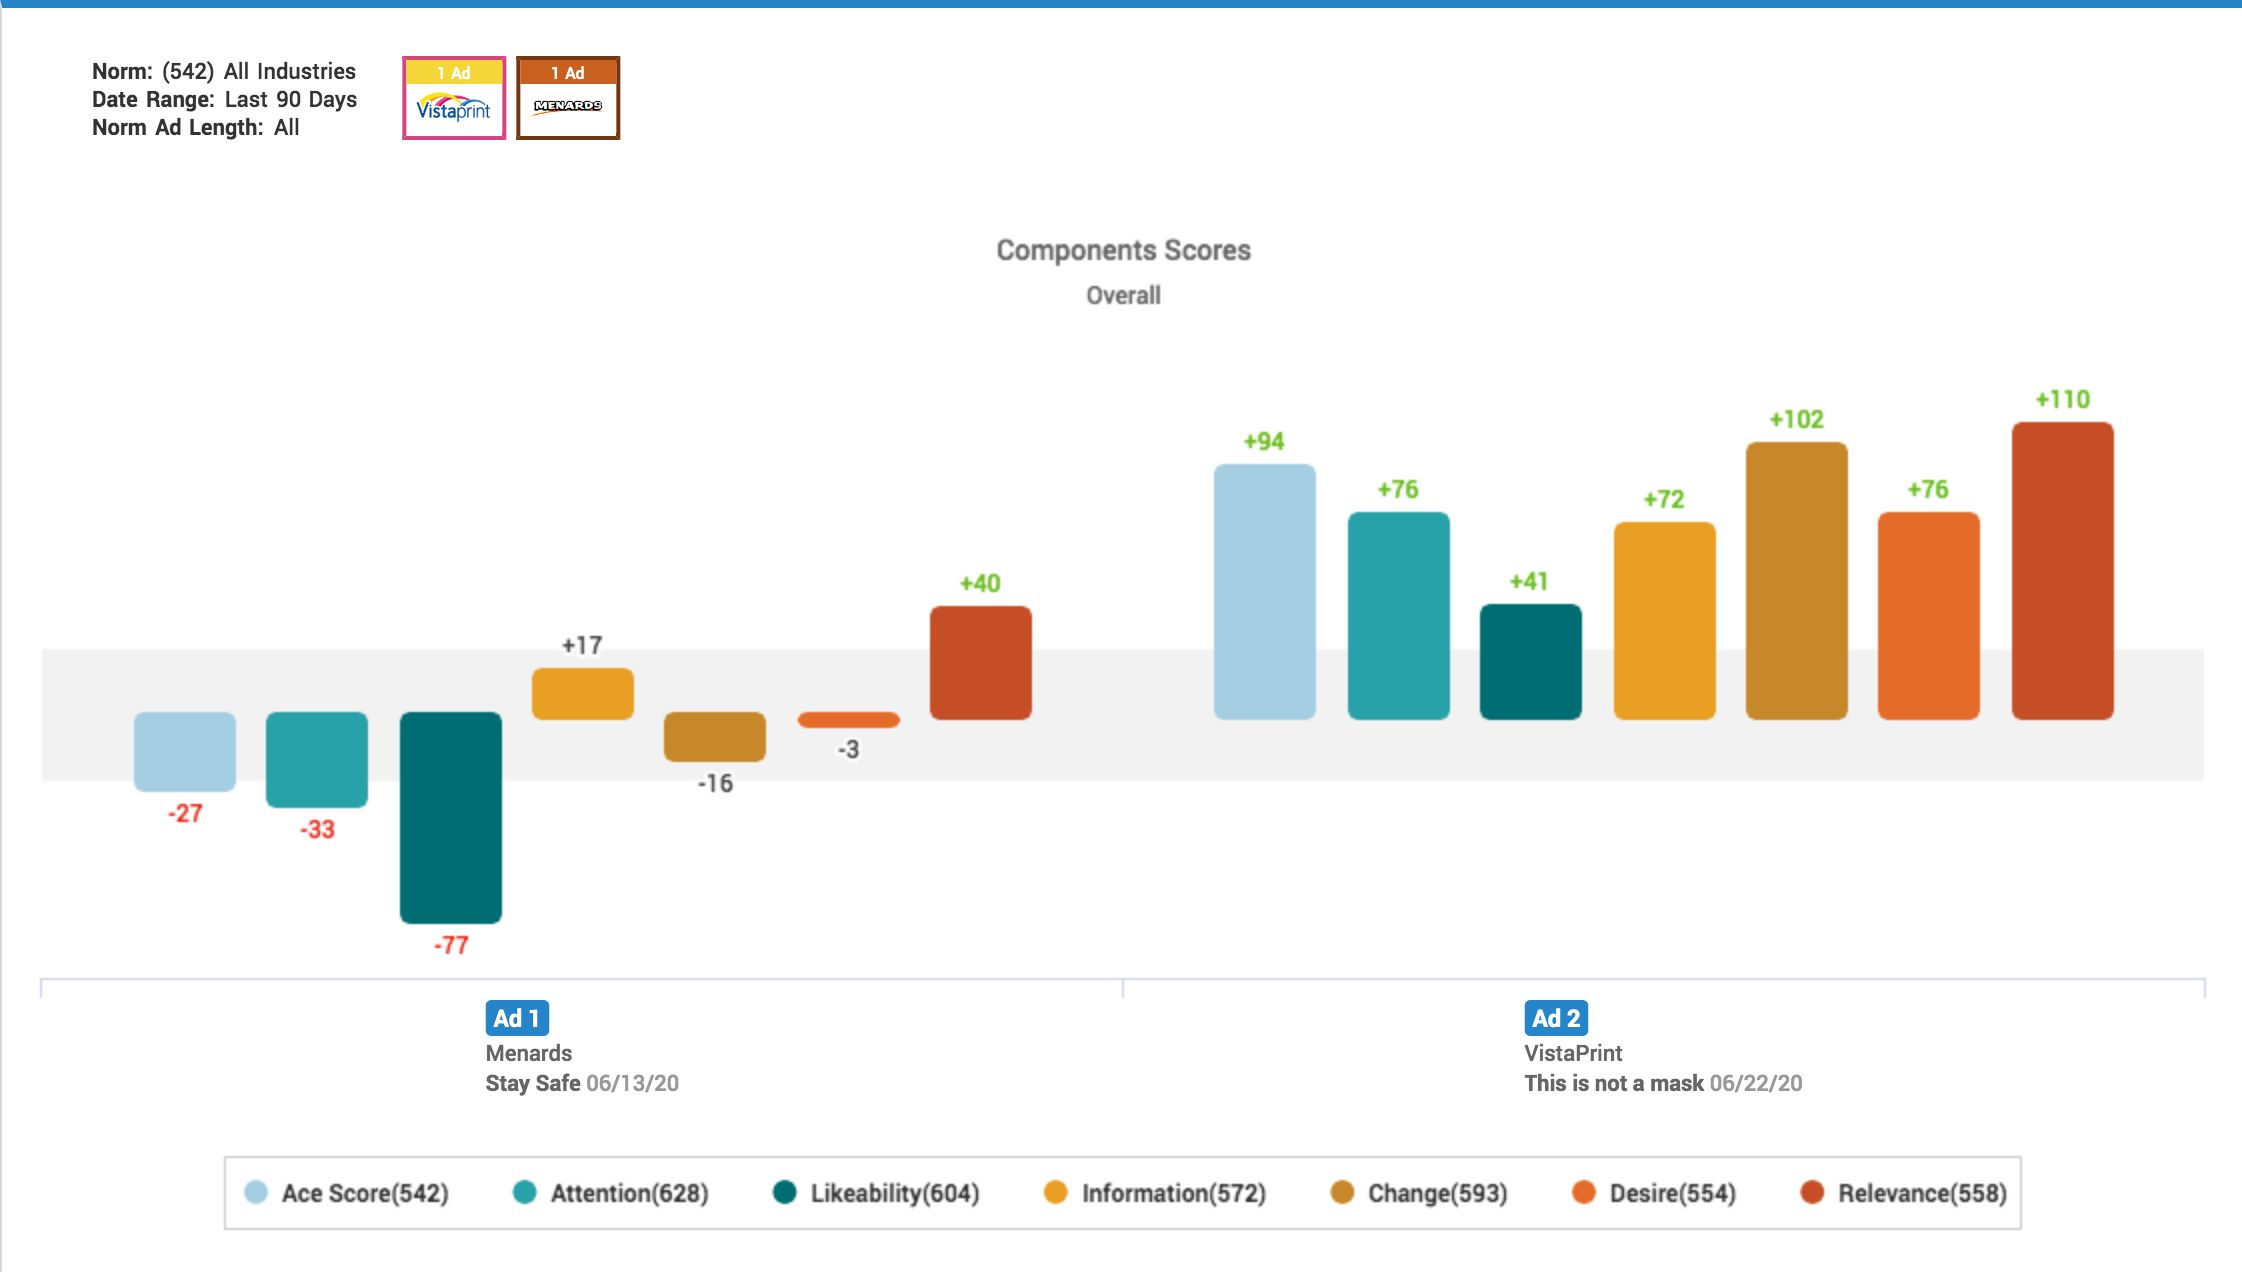 Face maks in ads: Ae Metrix component scores for Vistaprint and Menard's ads